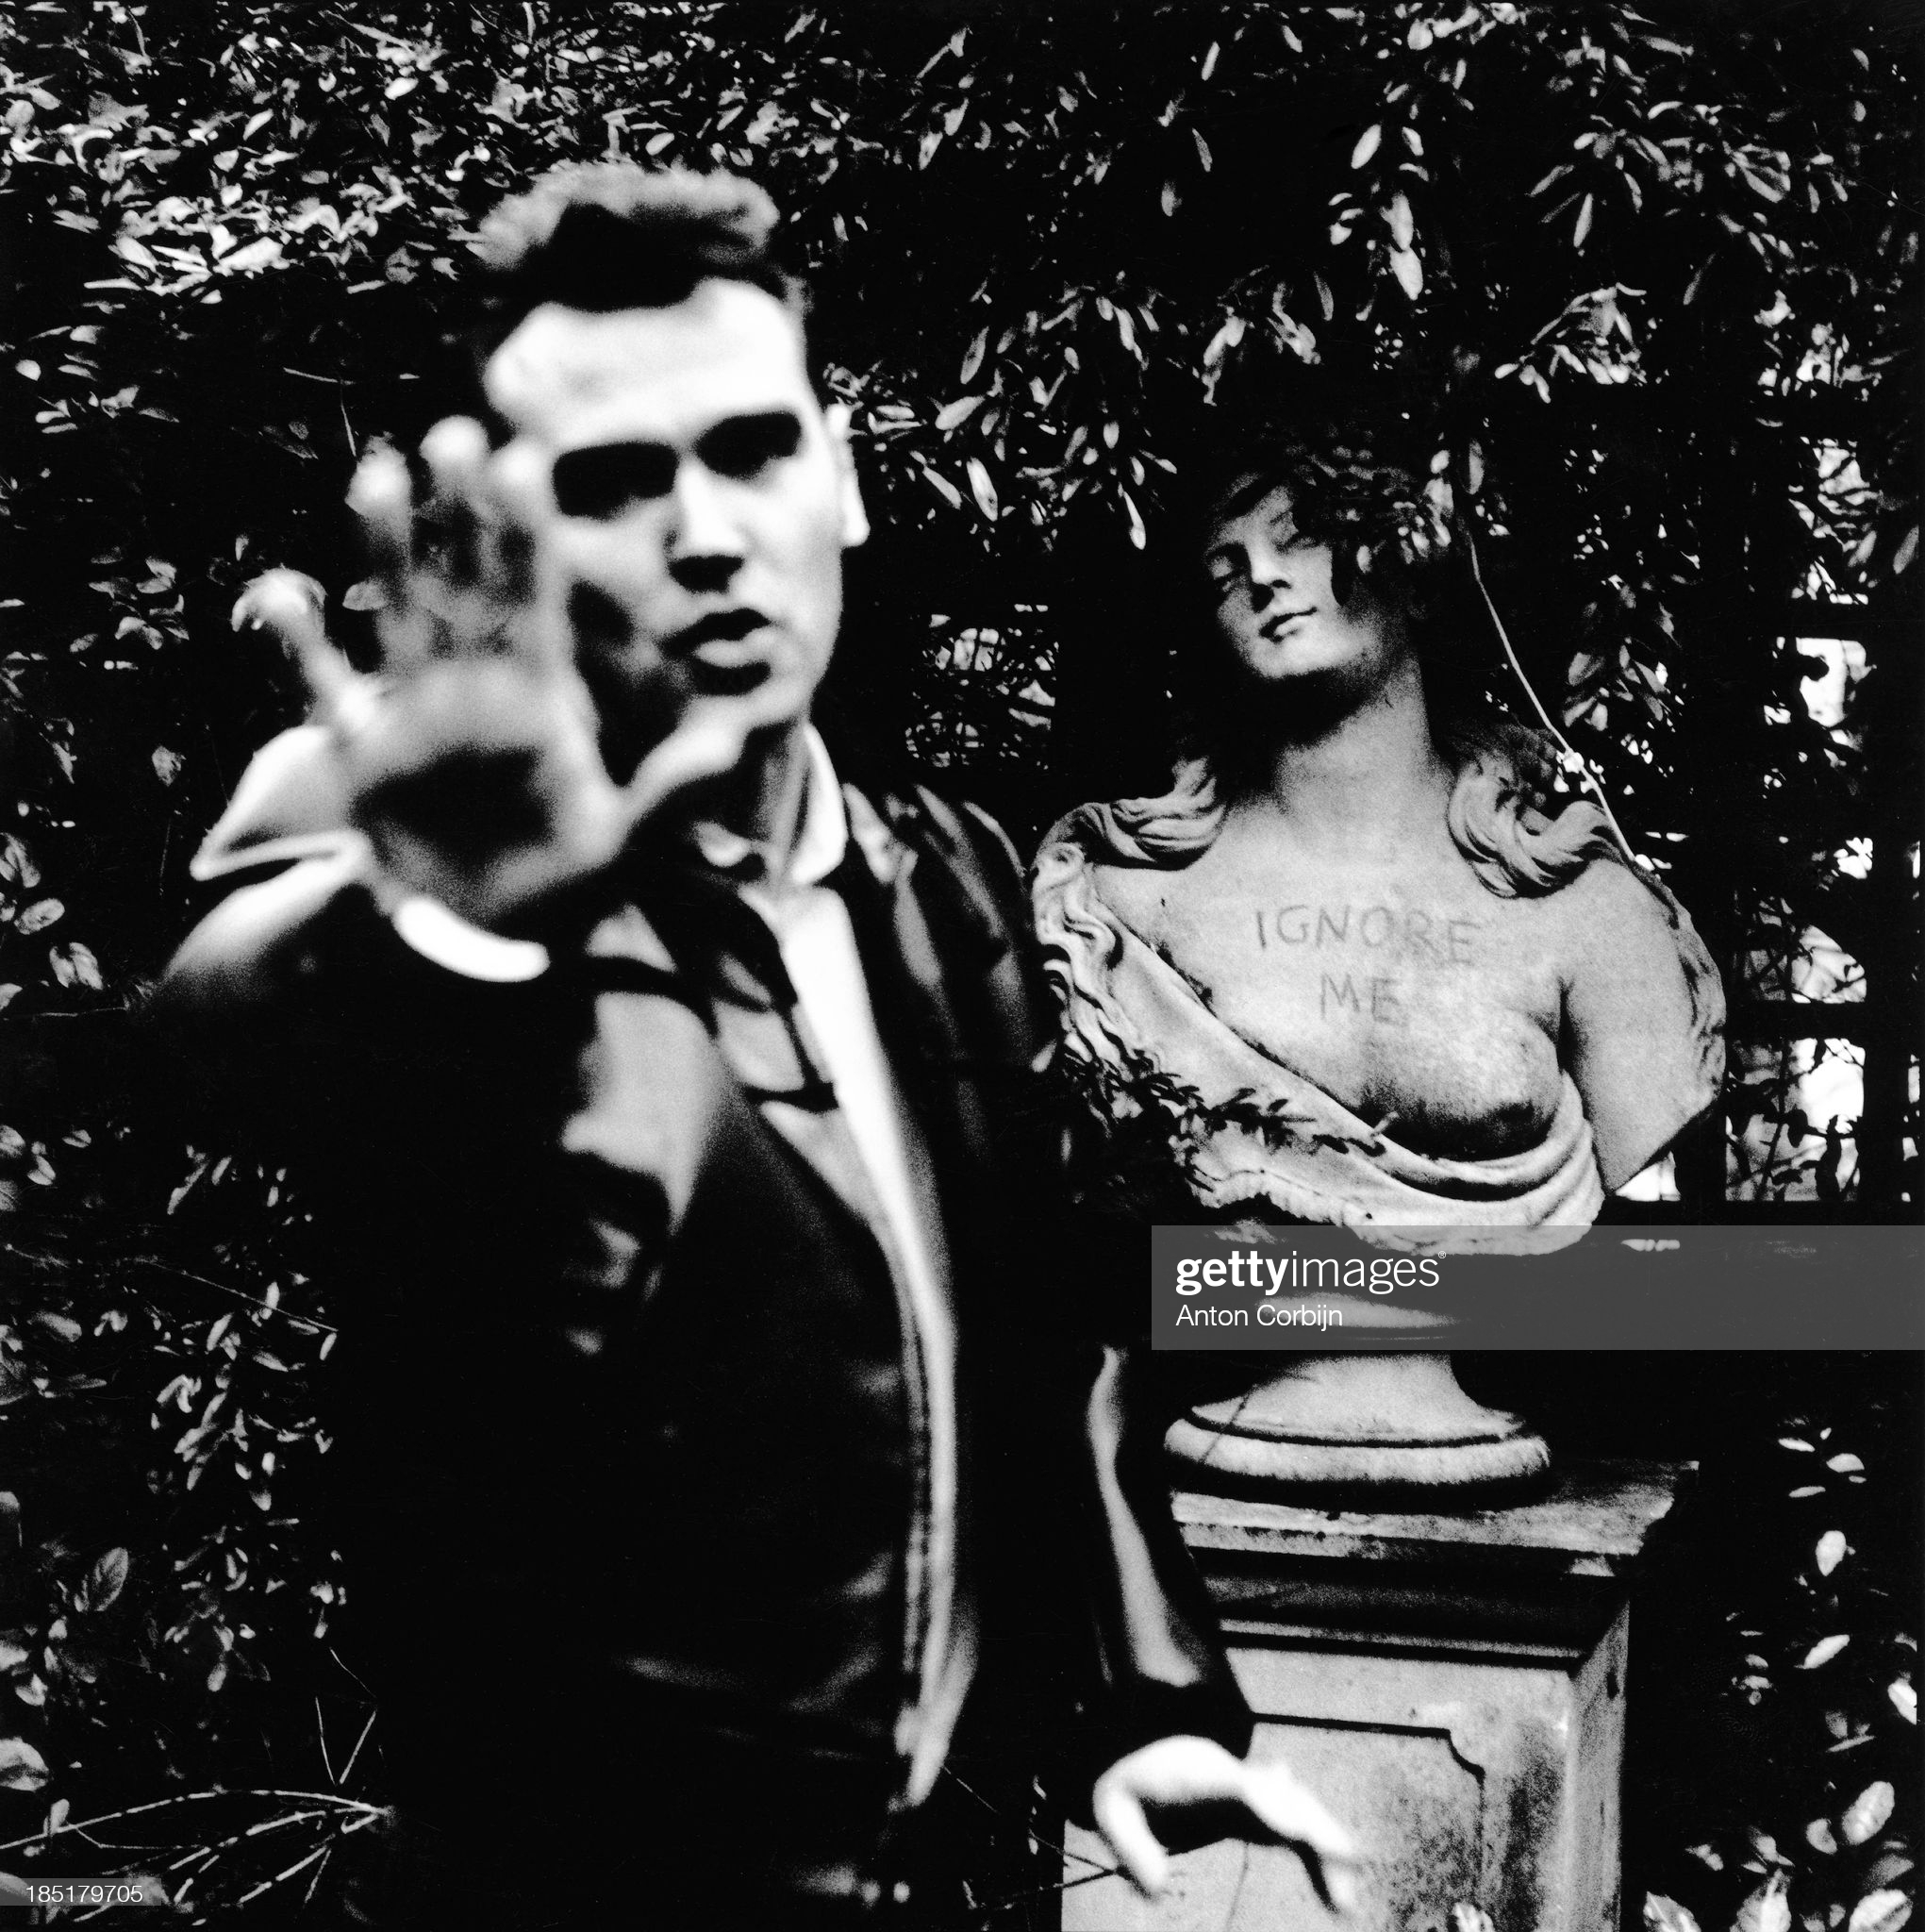 Morrissey January 17th 1994 London Anton Corbijn.jpg